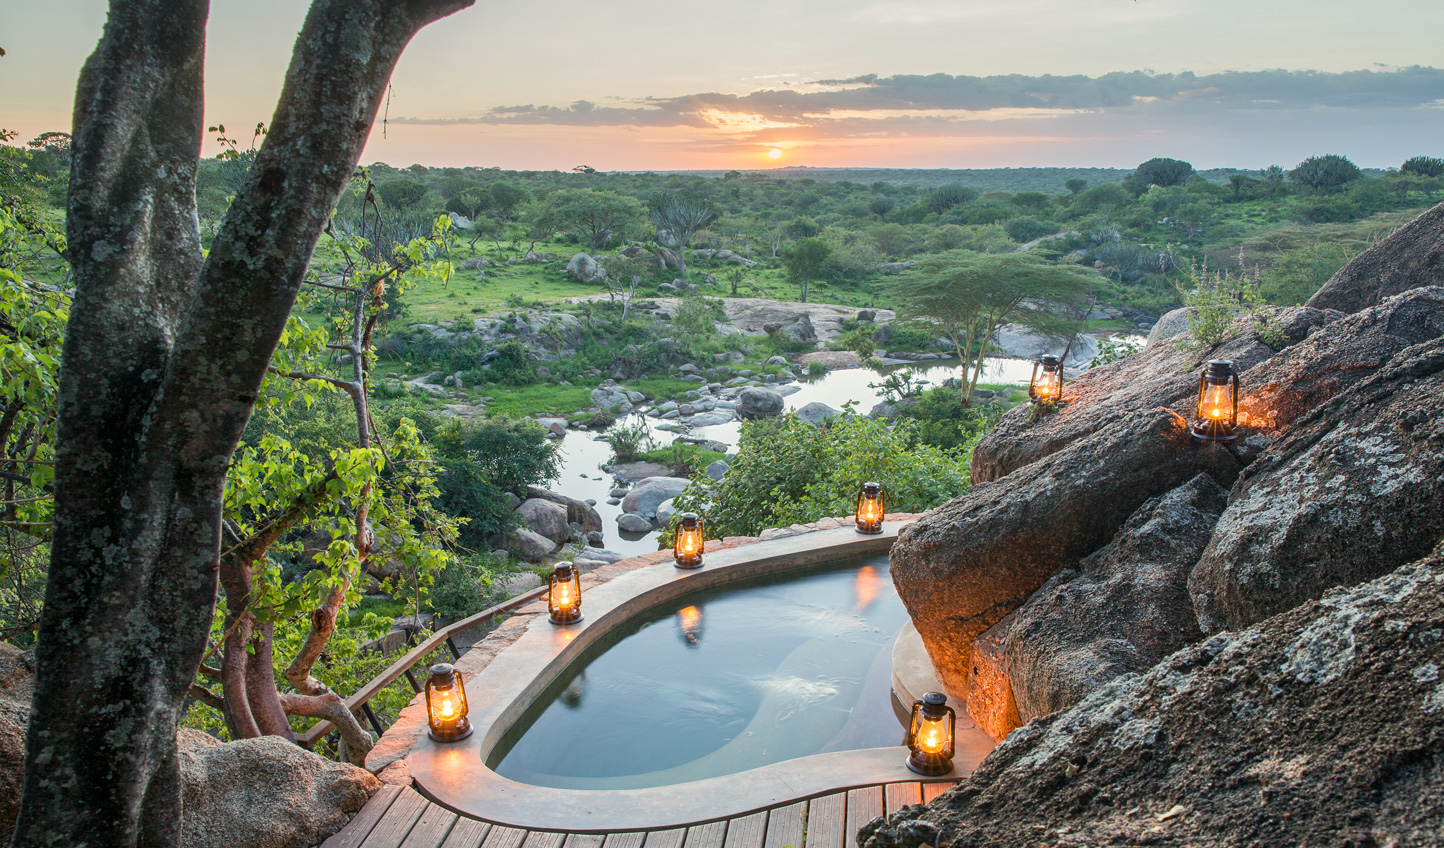 Take a romantic dip as the sun sets in the distance